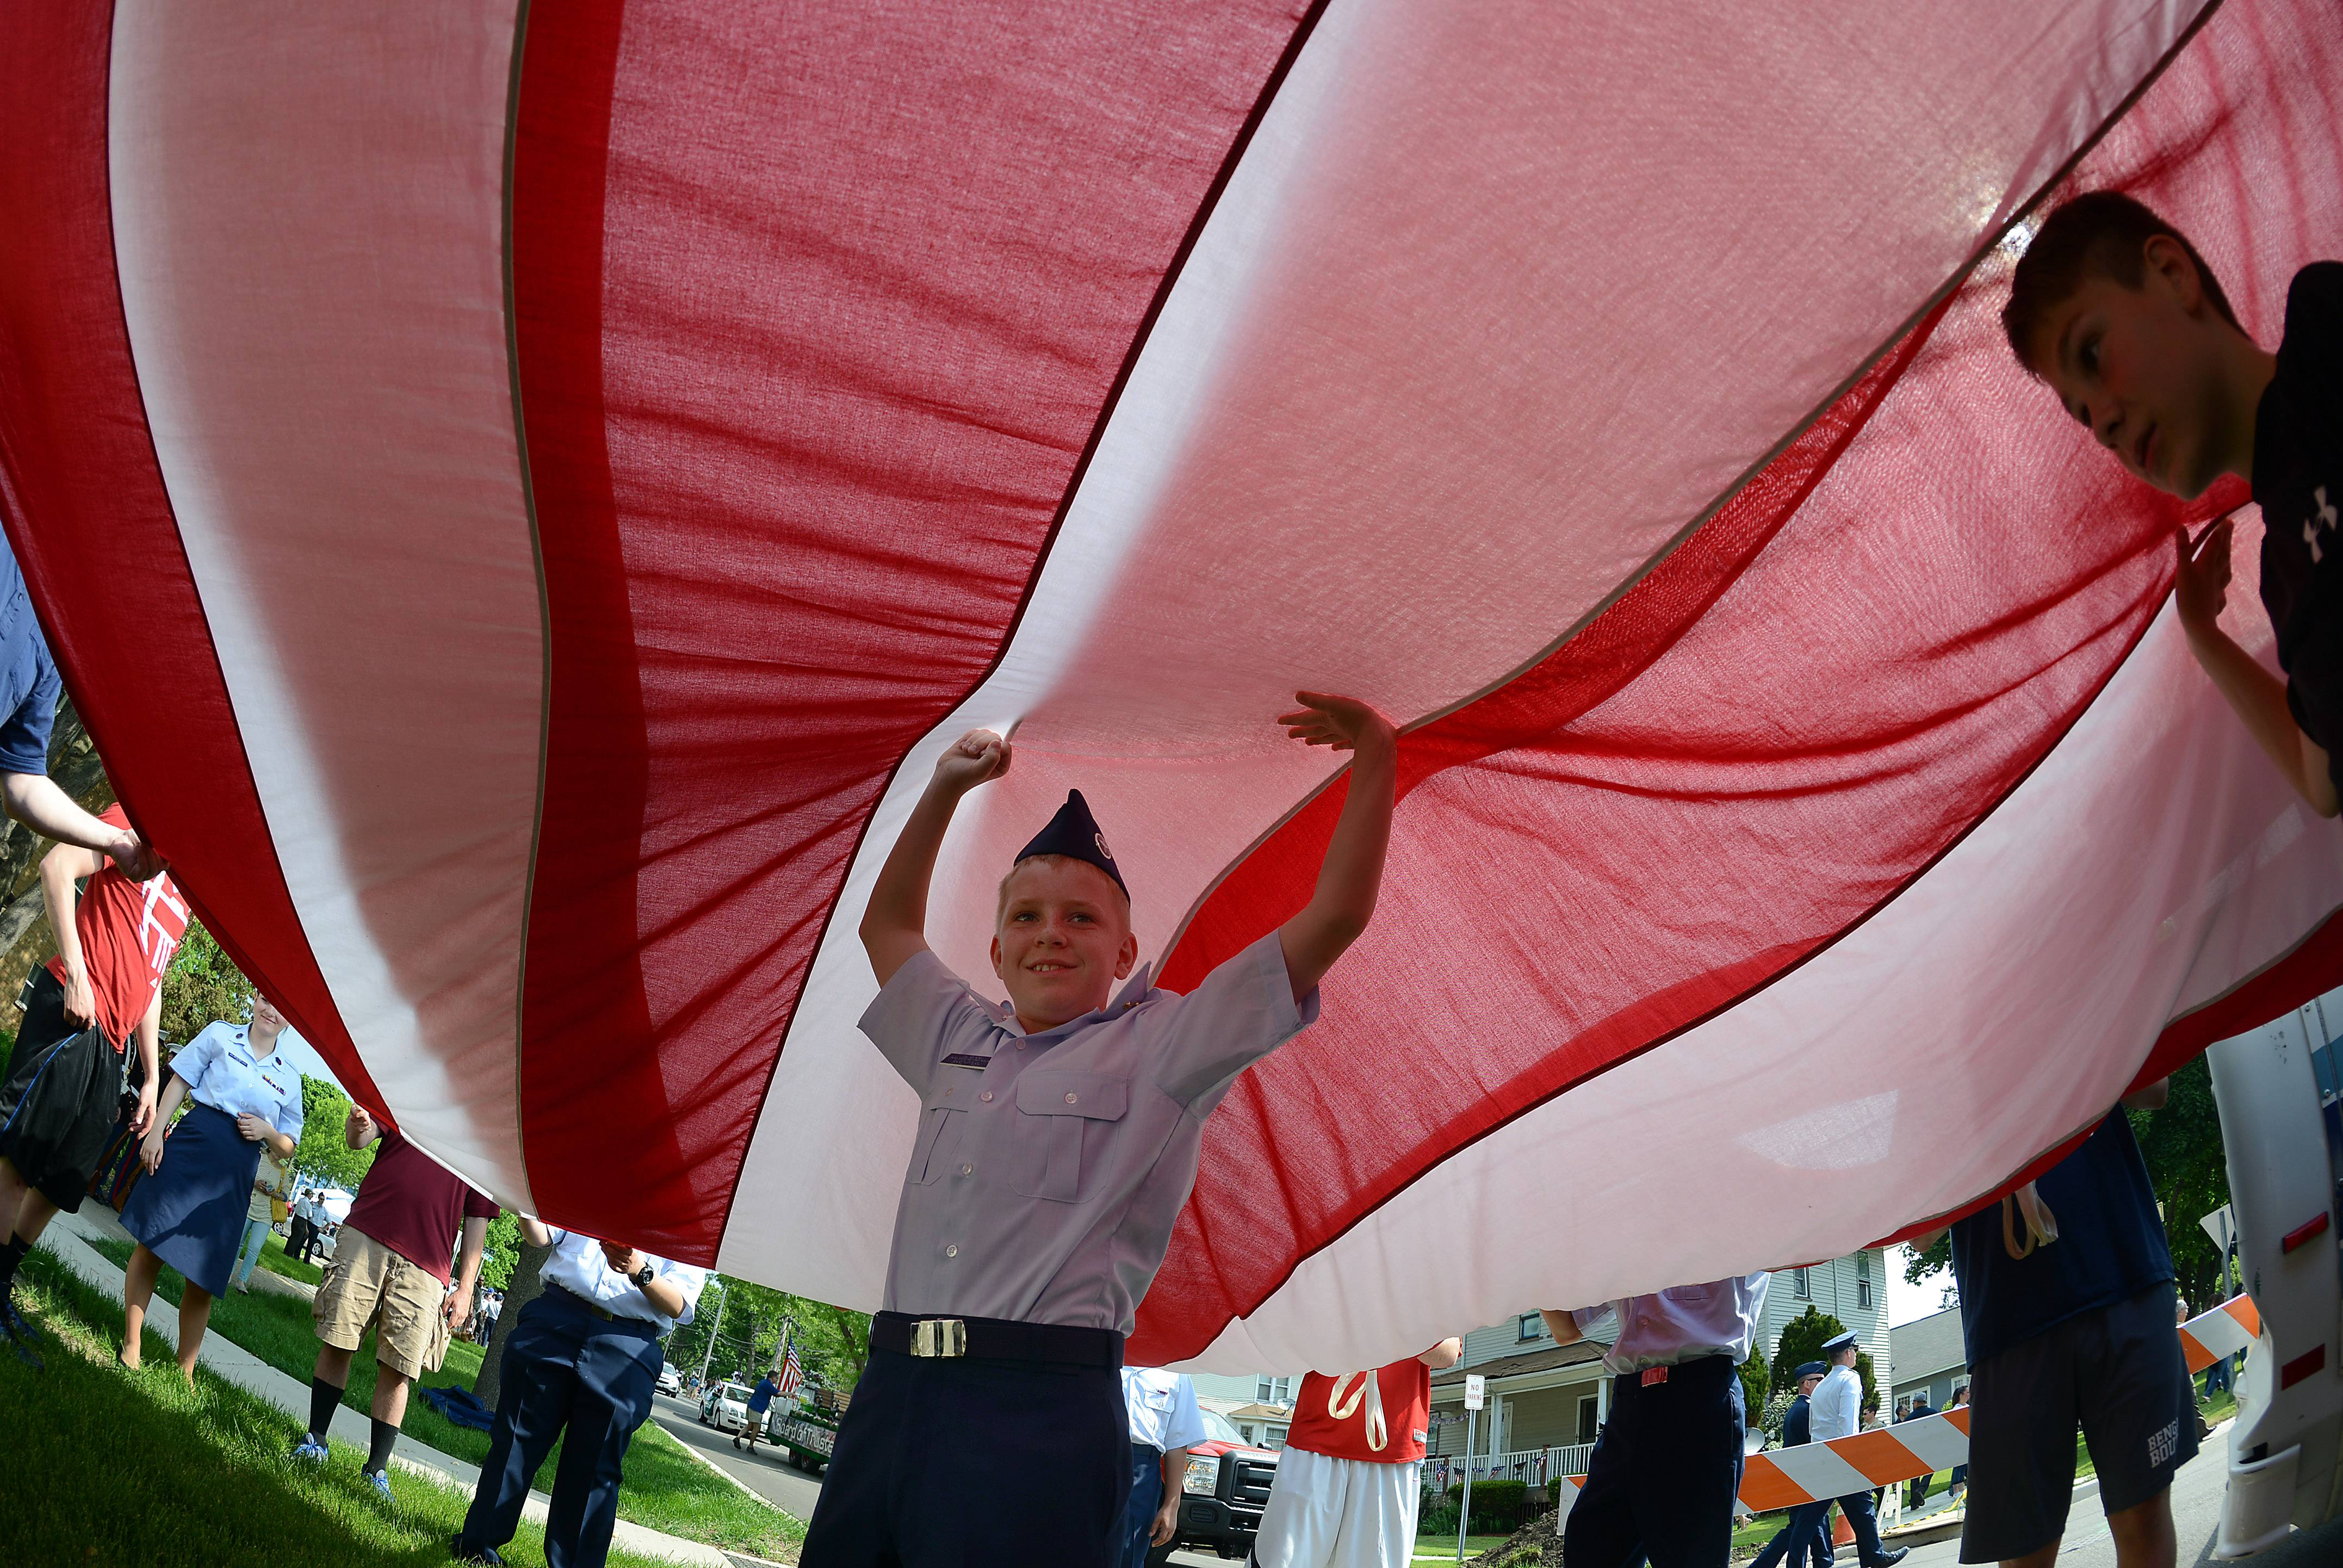 Cadet Basic of the Civil Air Patrol of Lake in the Hills Jacob Skrzypinski, 13, of West Dundee holds up the center of the giant flag at the Arlington Heights Memorial Day parade and ceremony on Monday.